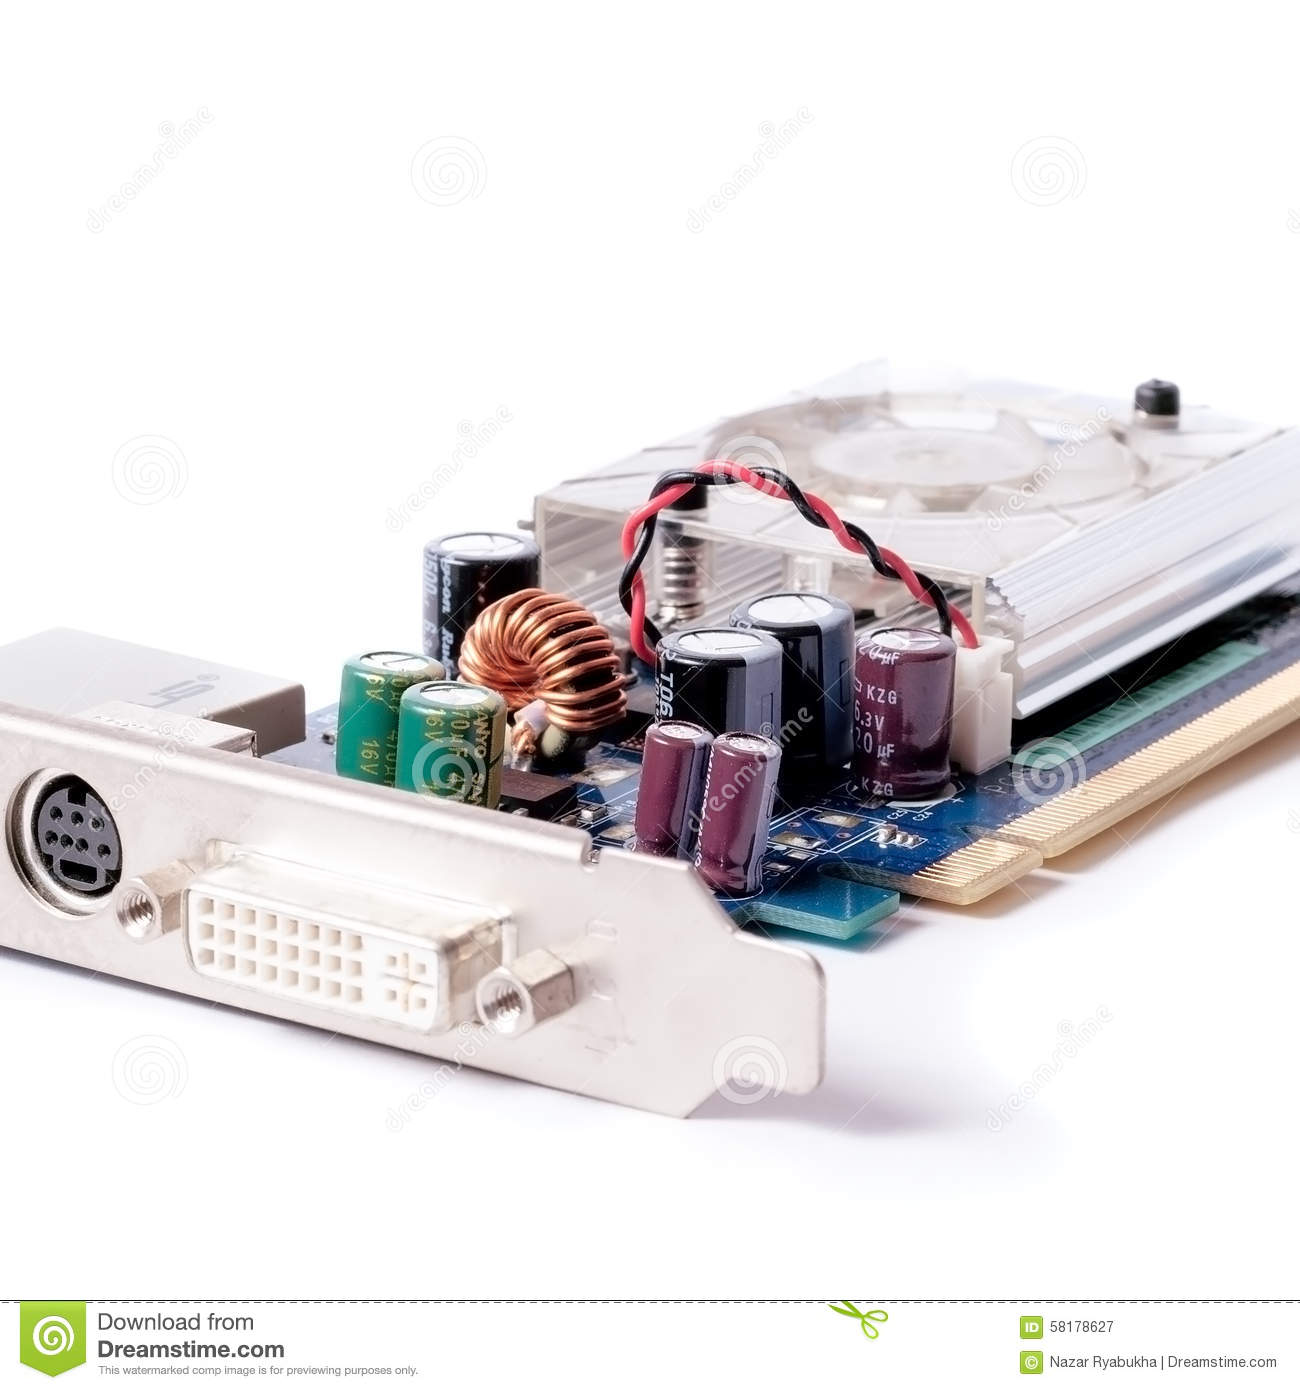 how to find computer graphics card